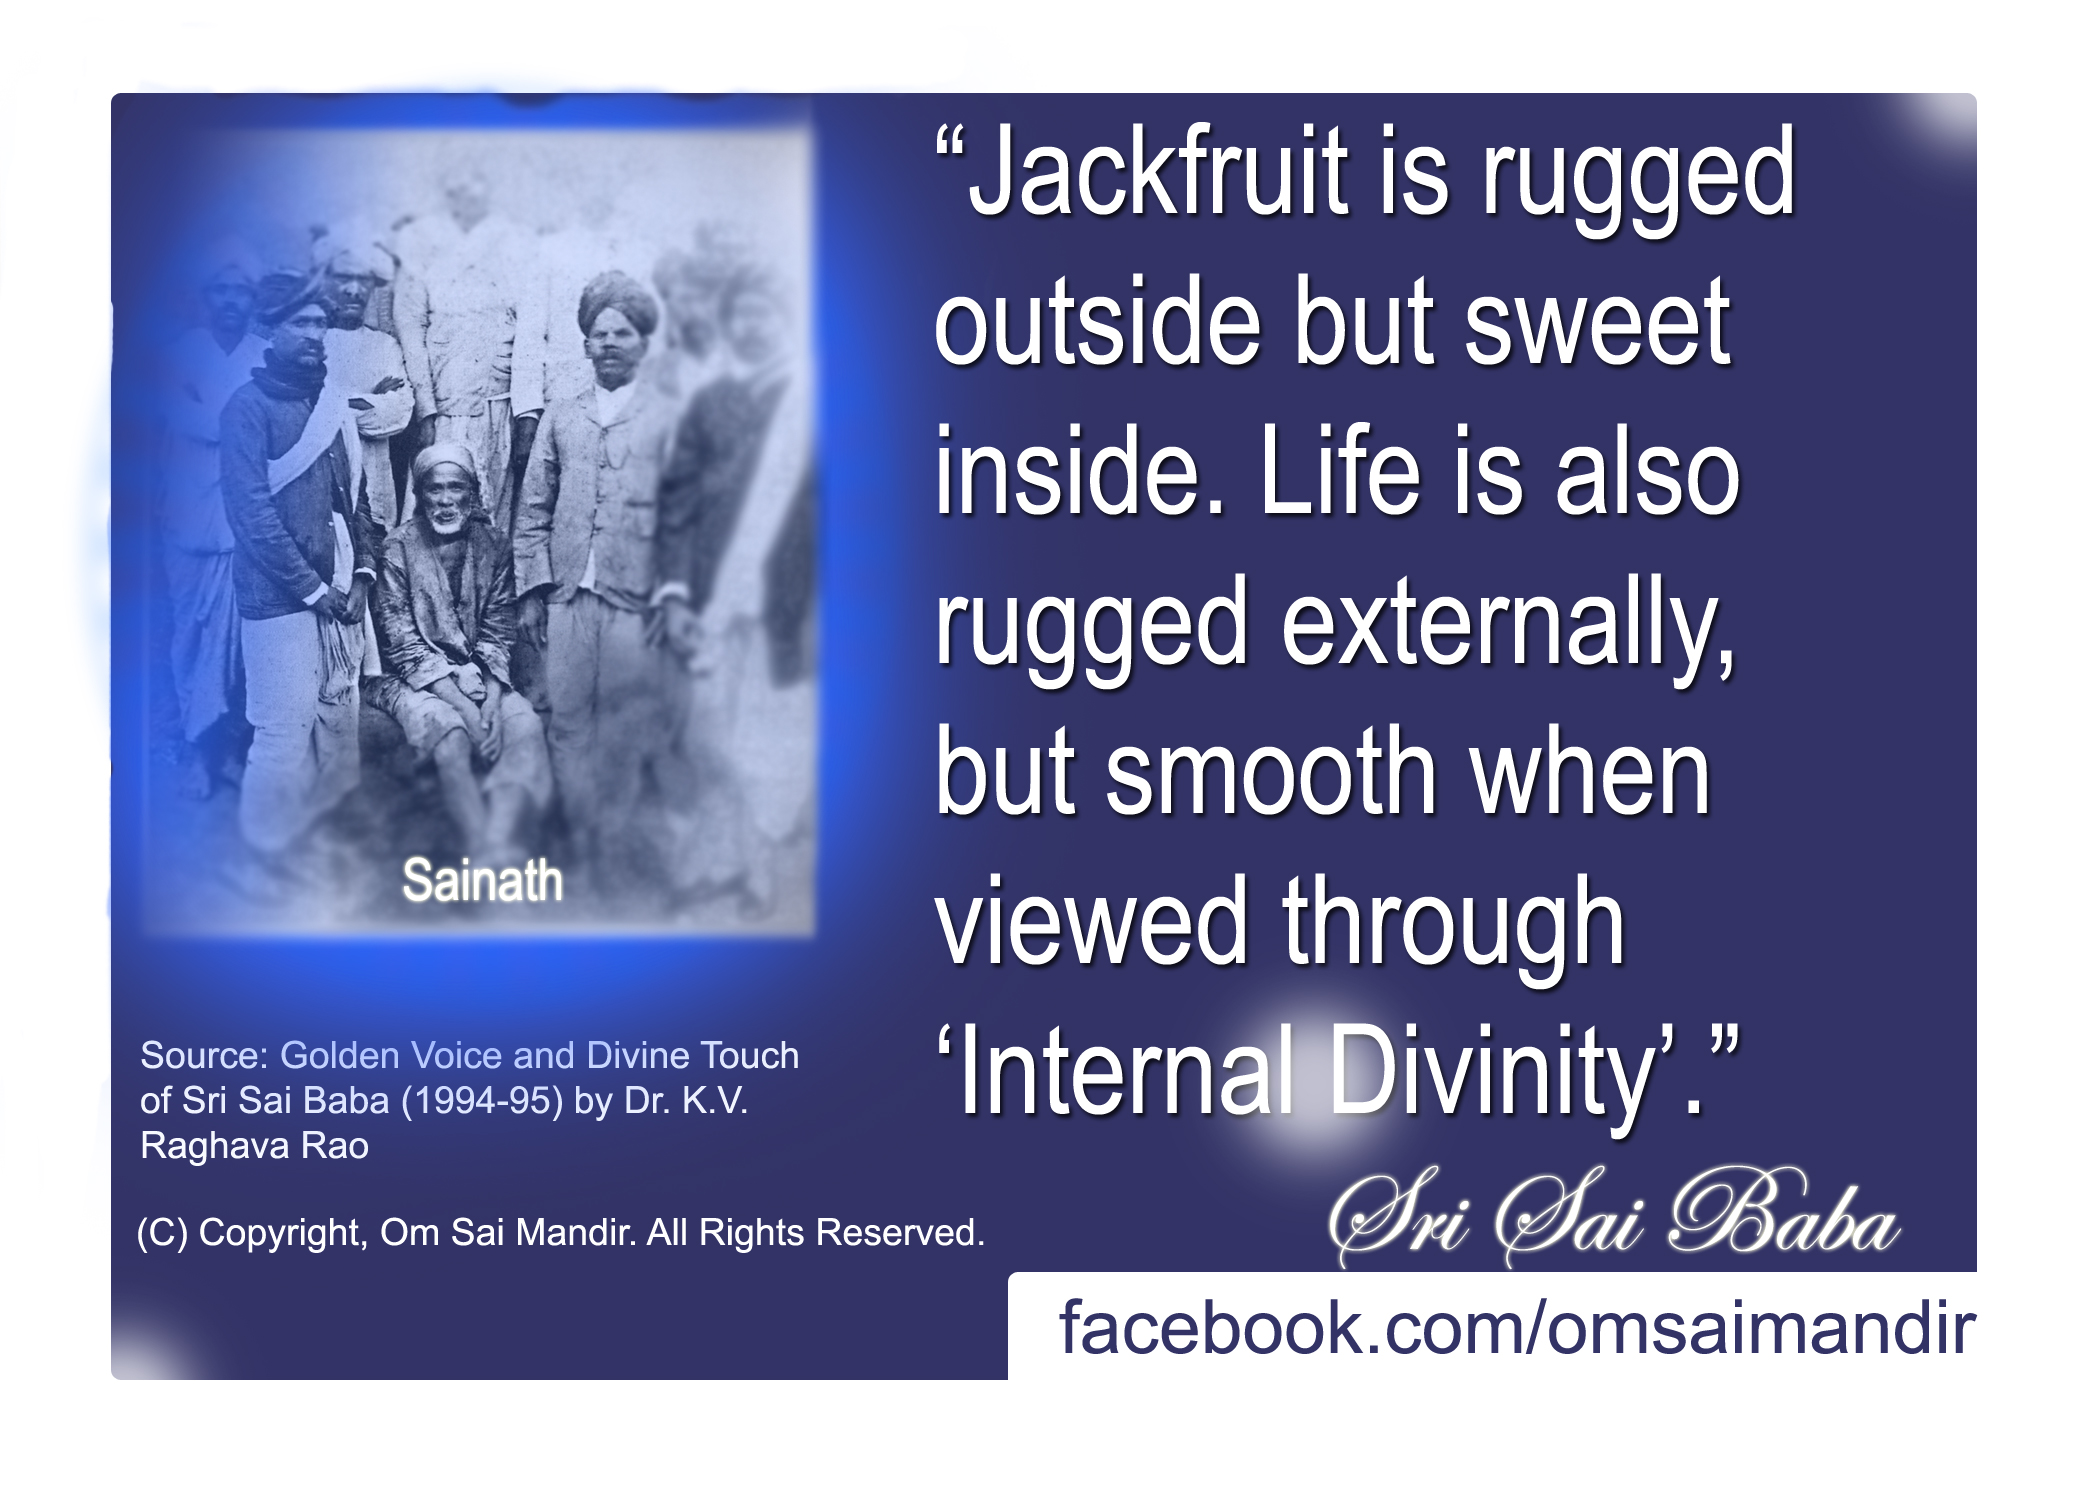 jackfruit_life_smooth_insid